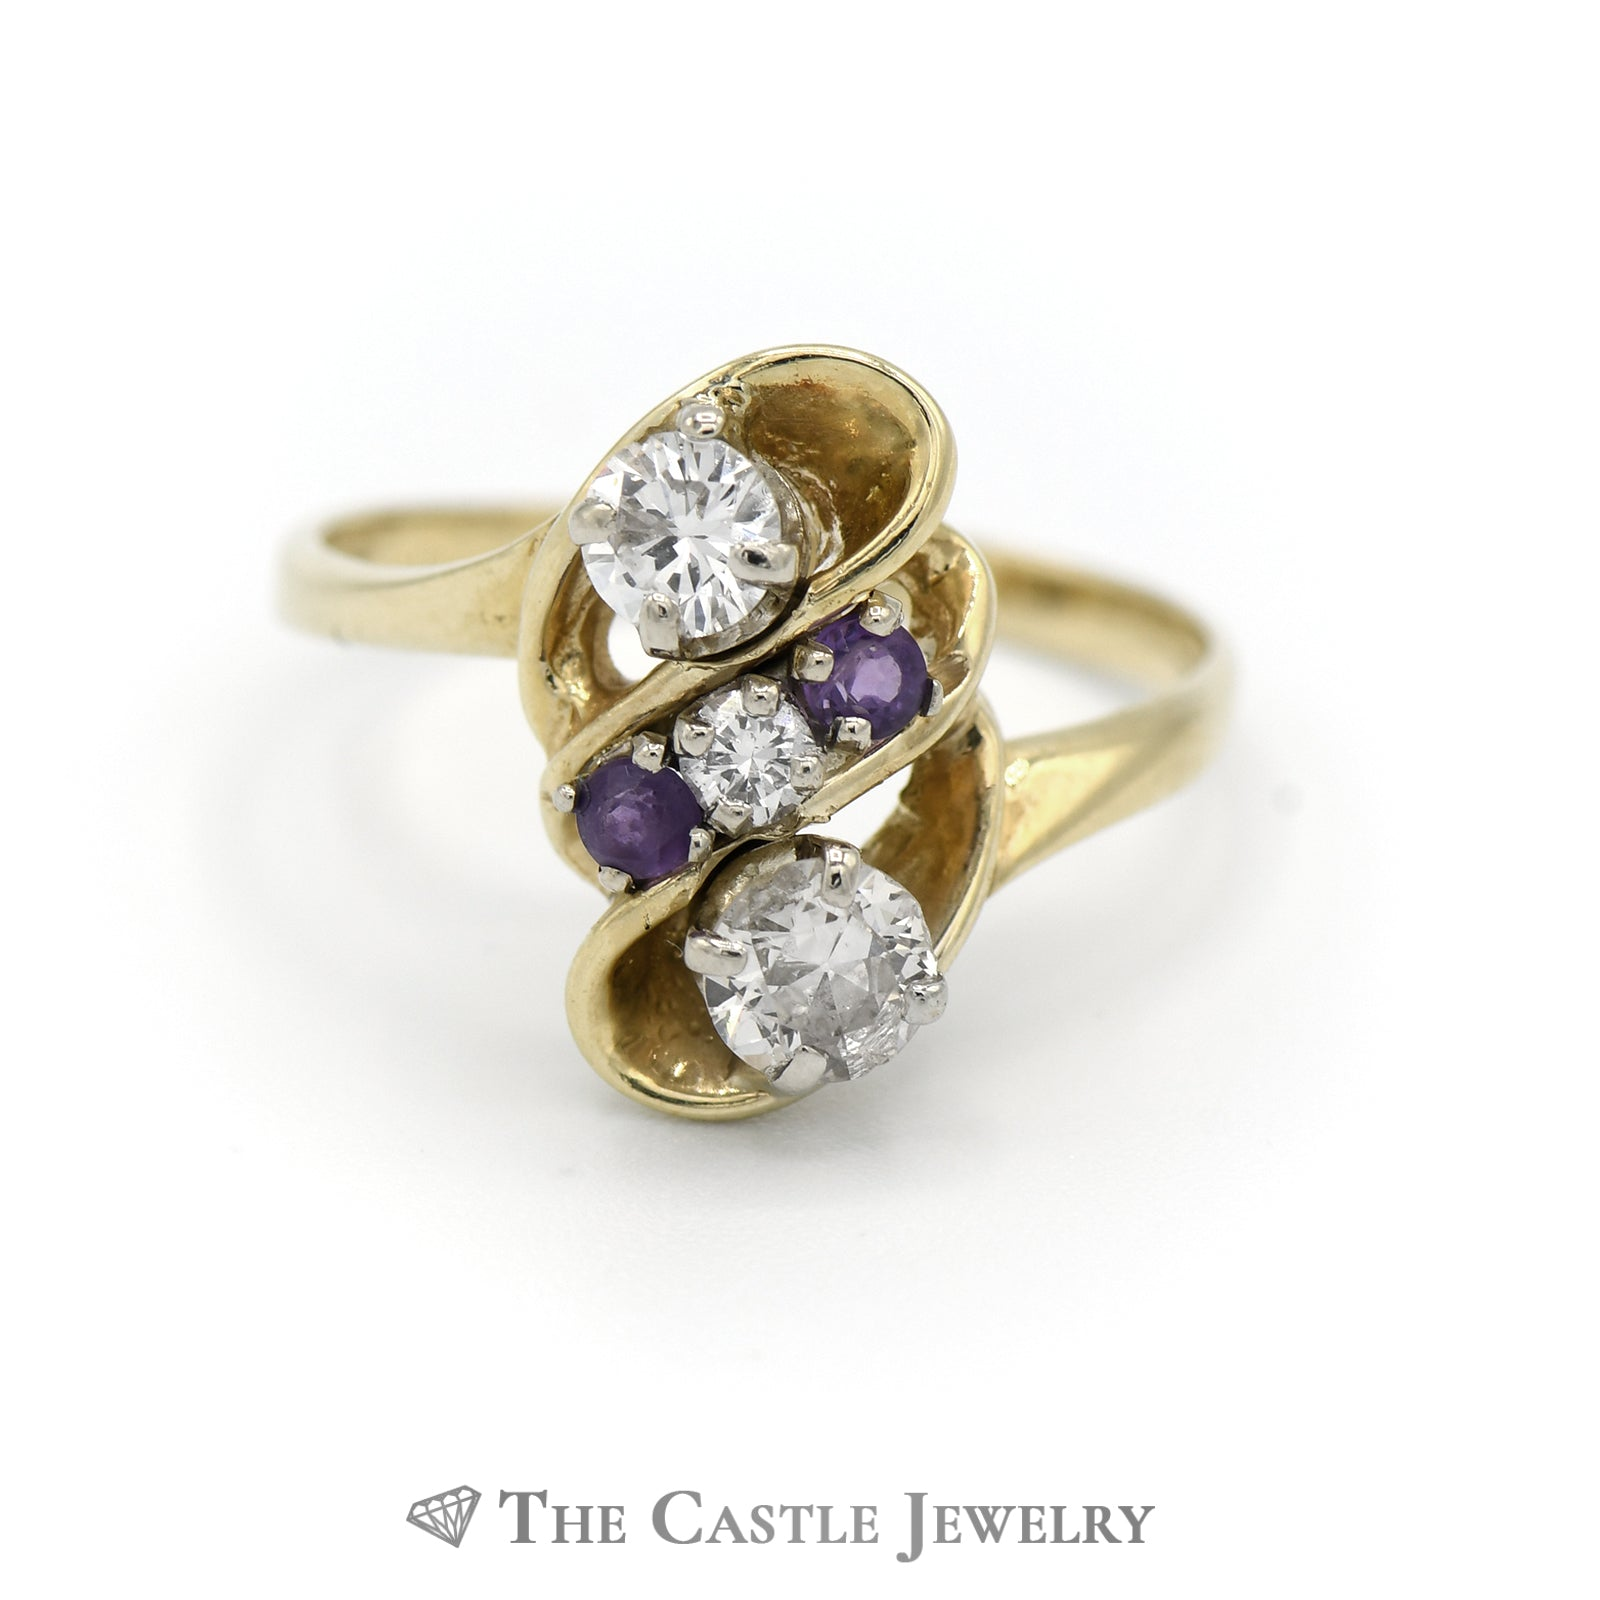 Fancy Design Diamond Ring With Amethyst Accents in 14K Yellow Gold